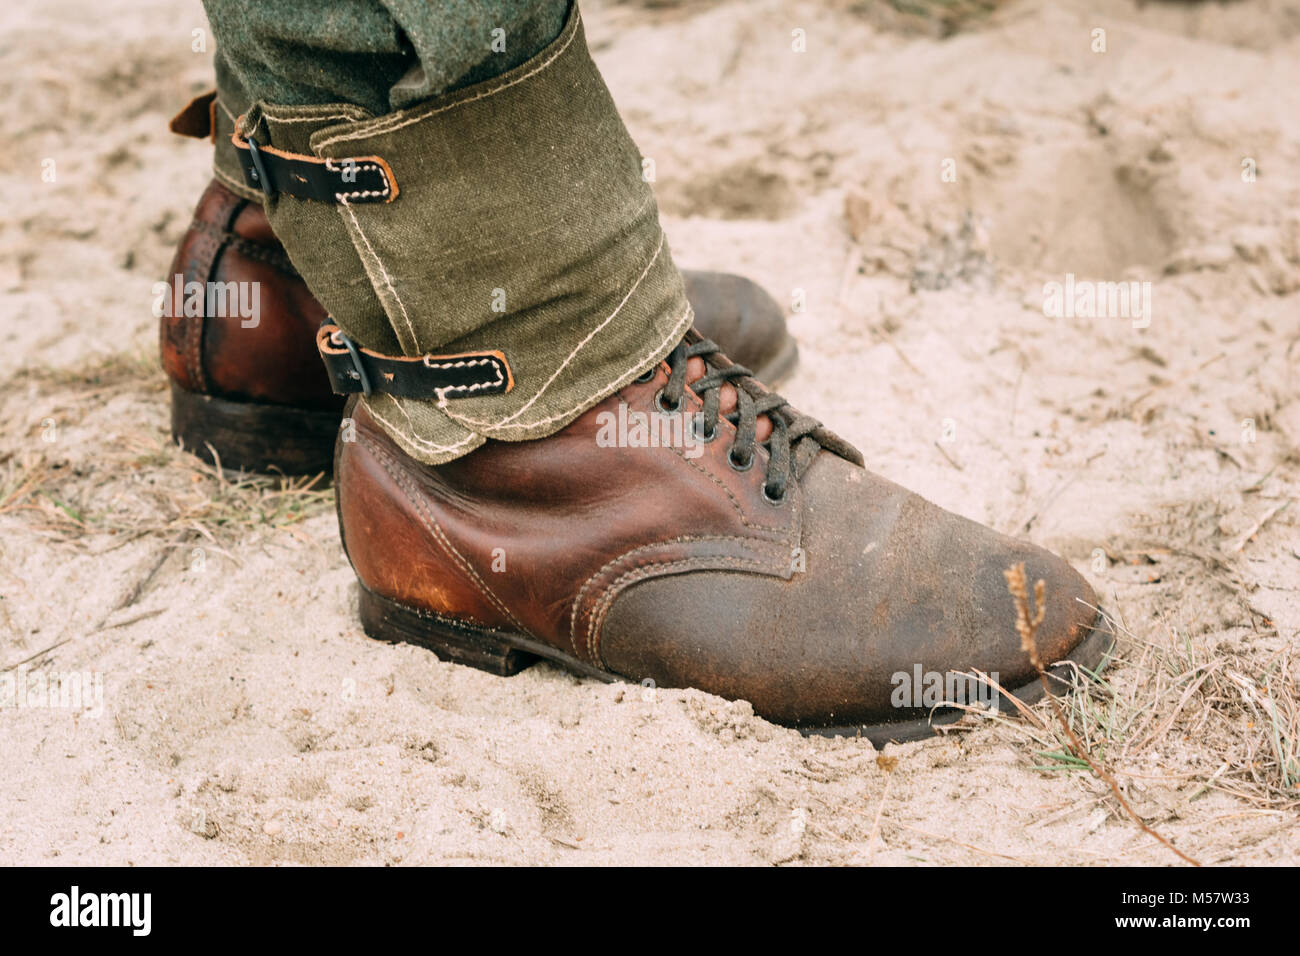 Soldier Boots German Army World War II. Close-up - Stock Image